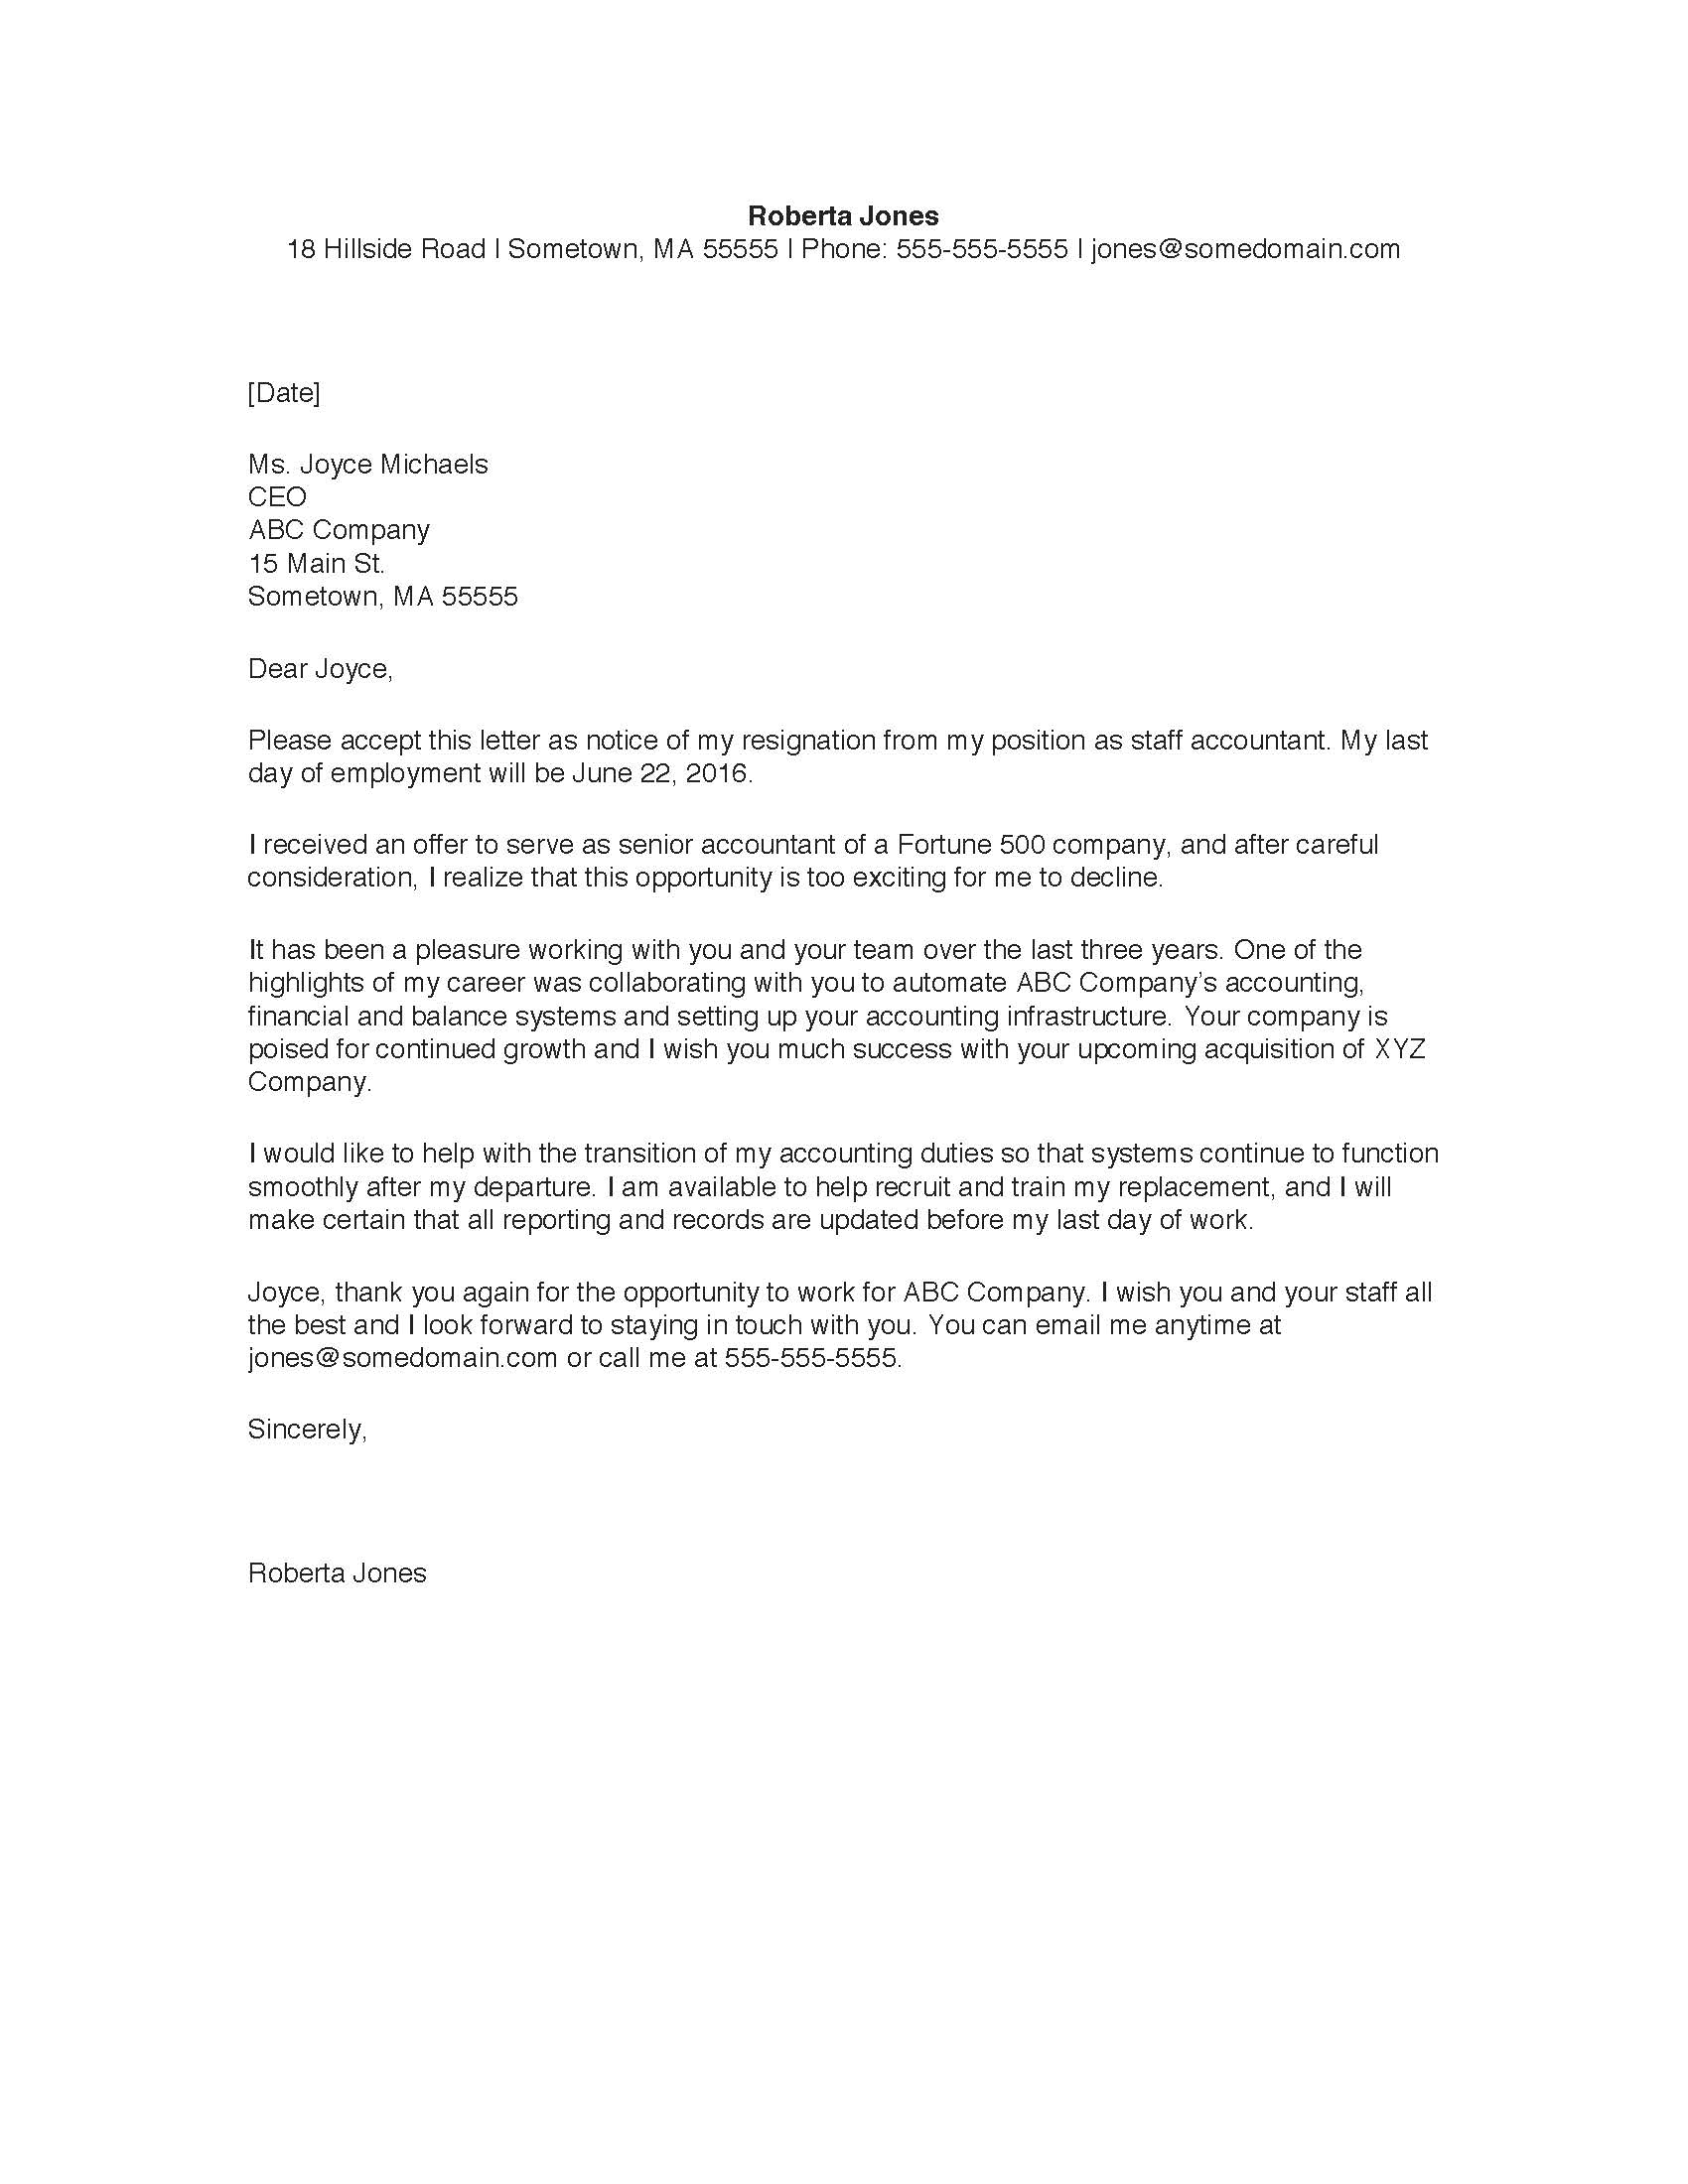 Resignation Letter | Monster.com